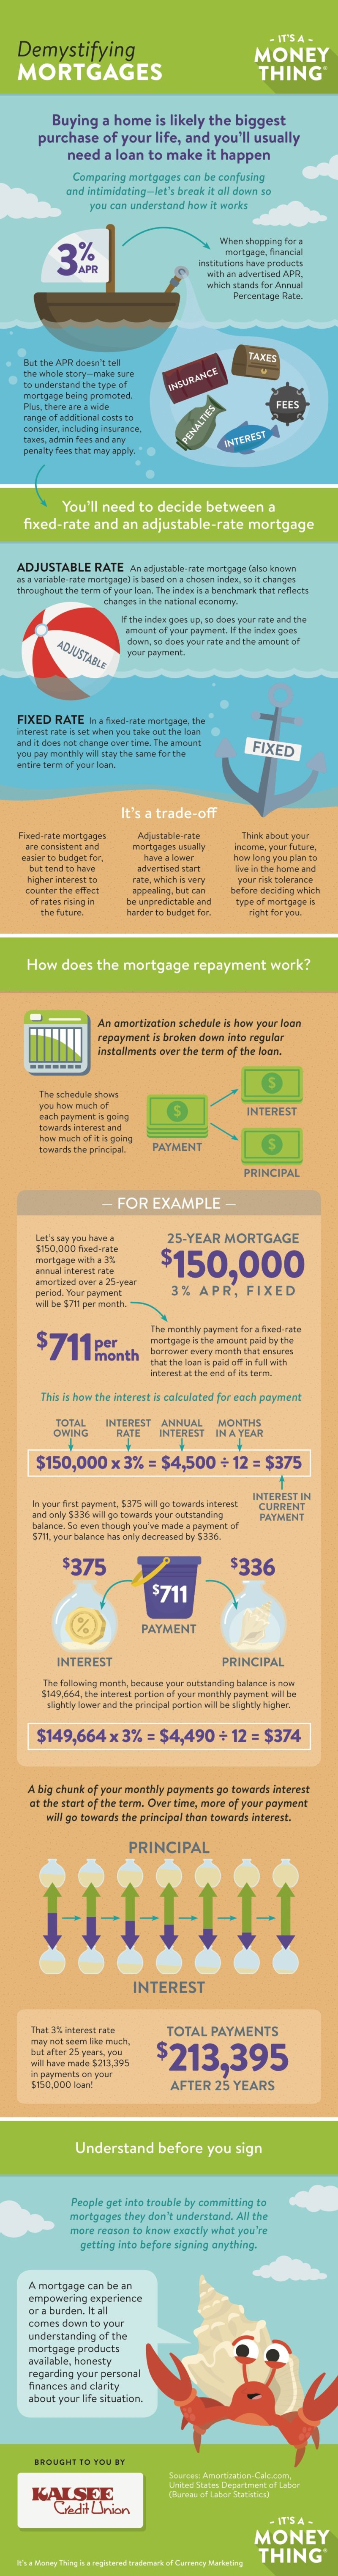 Demystifying Mortgages Infographic, click for transcription